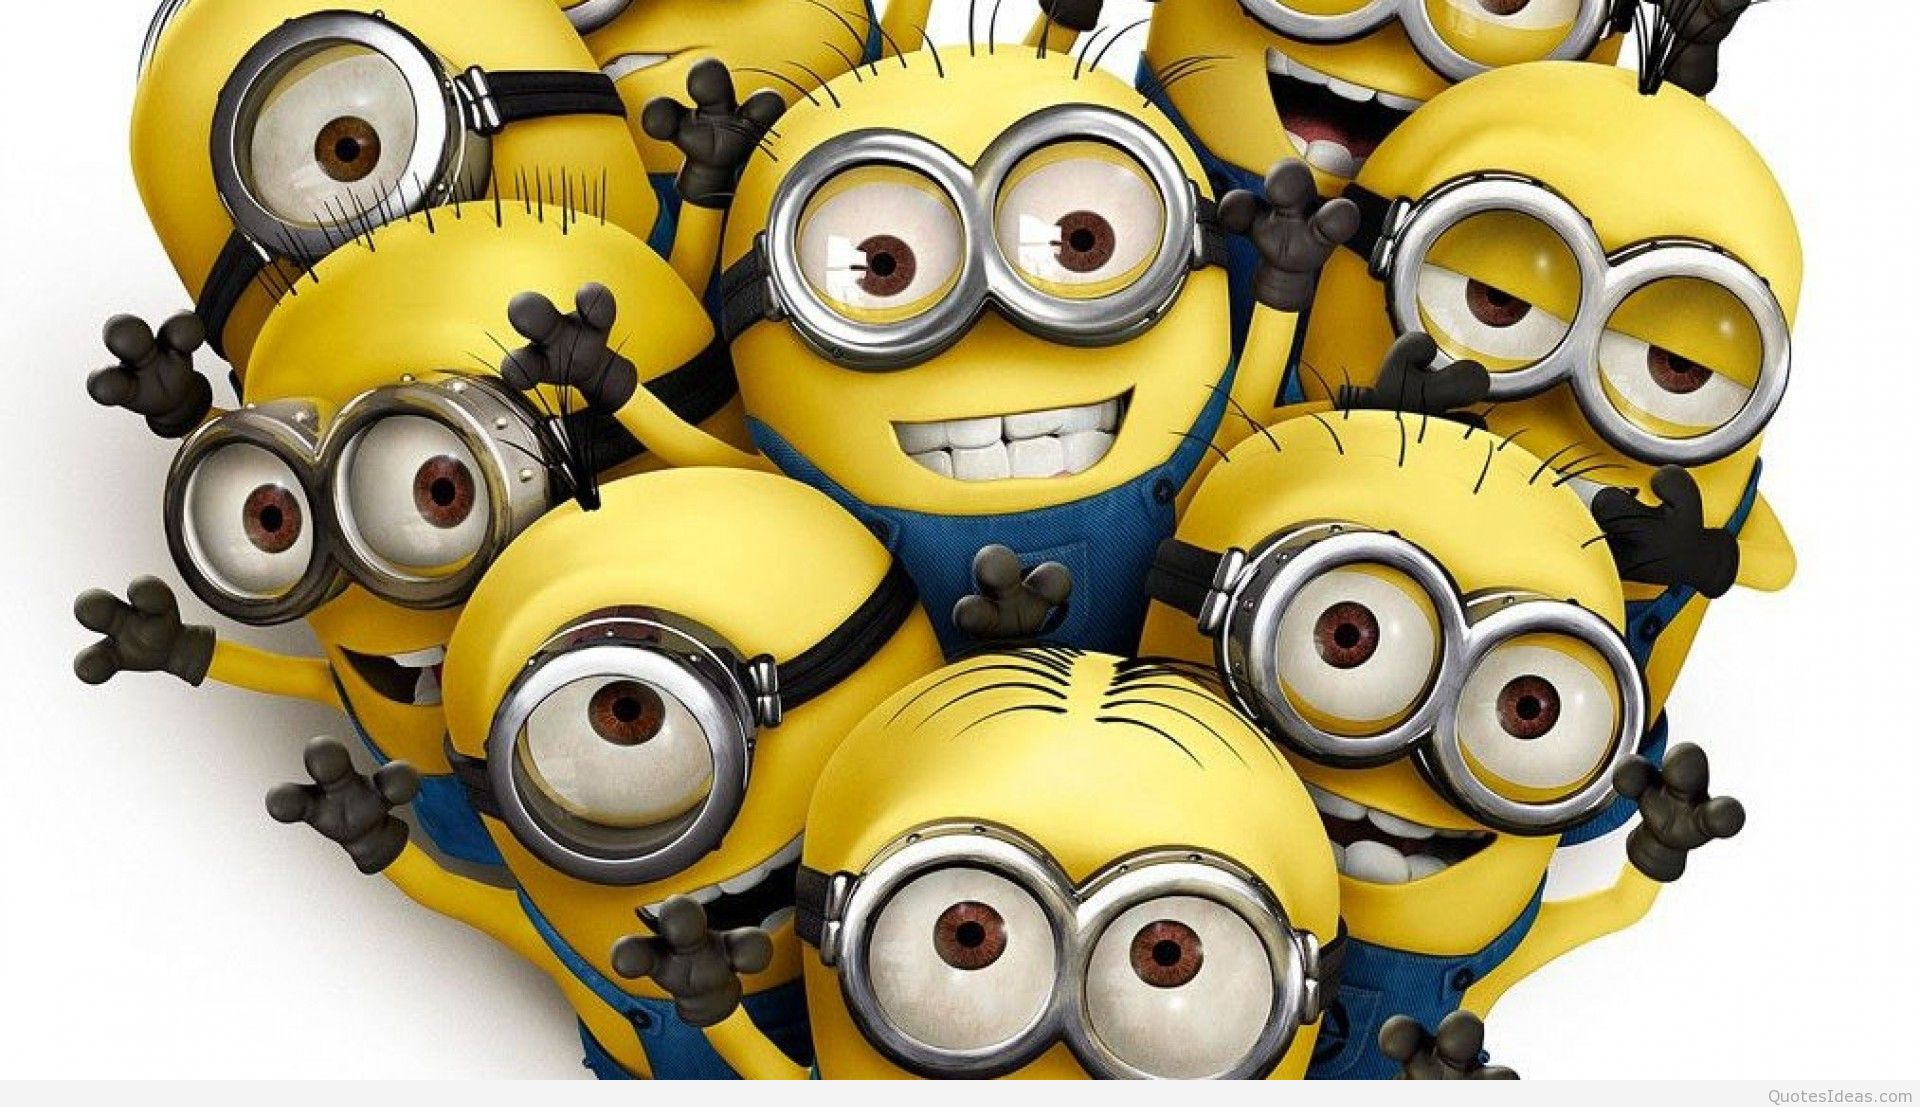 Despicable-Me-Minions-×-Minions-wallpaper-wpc9004215